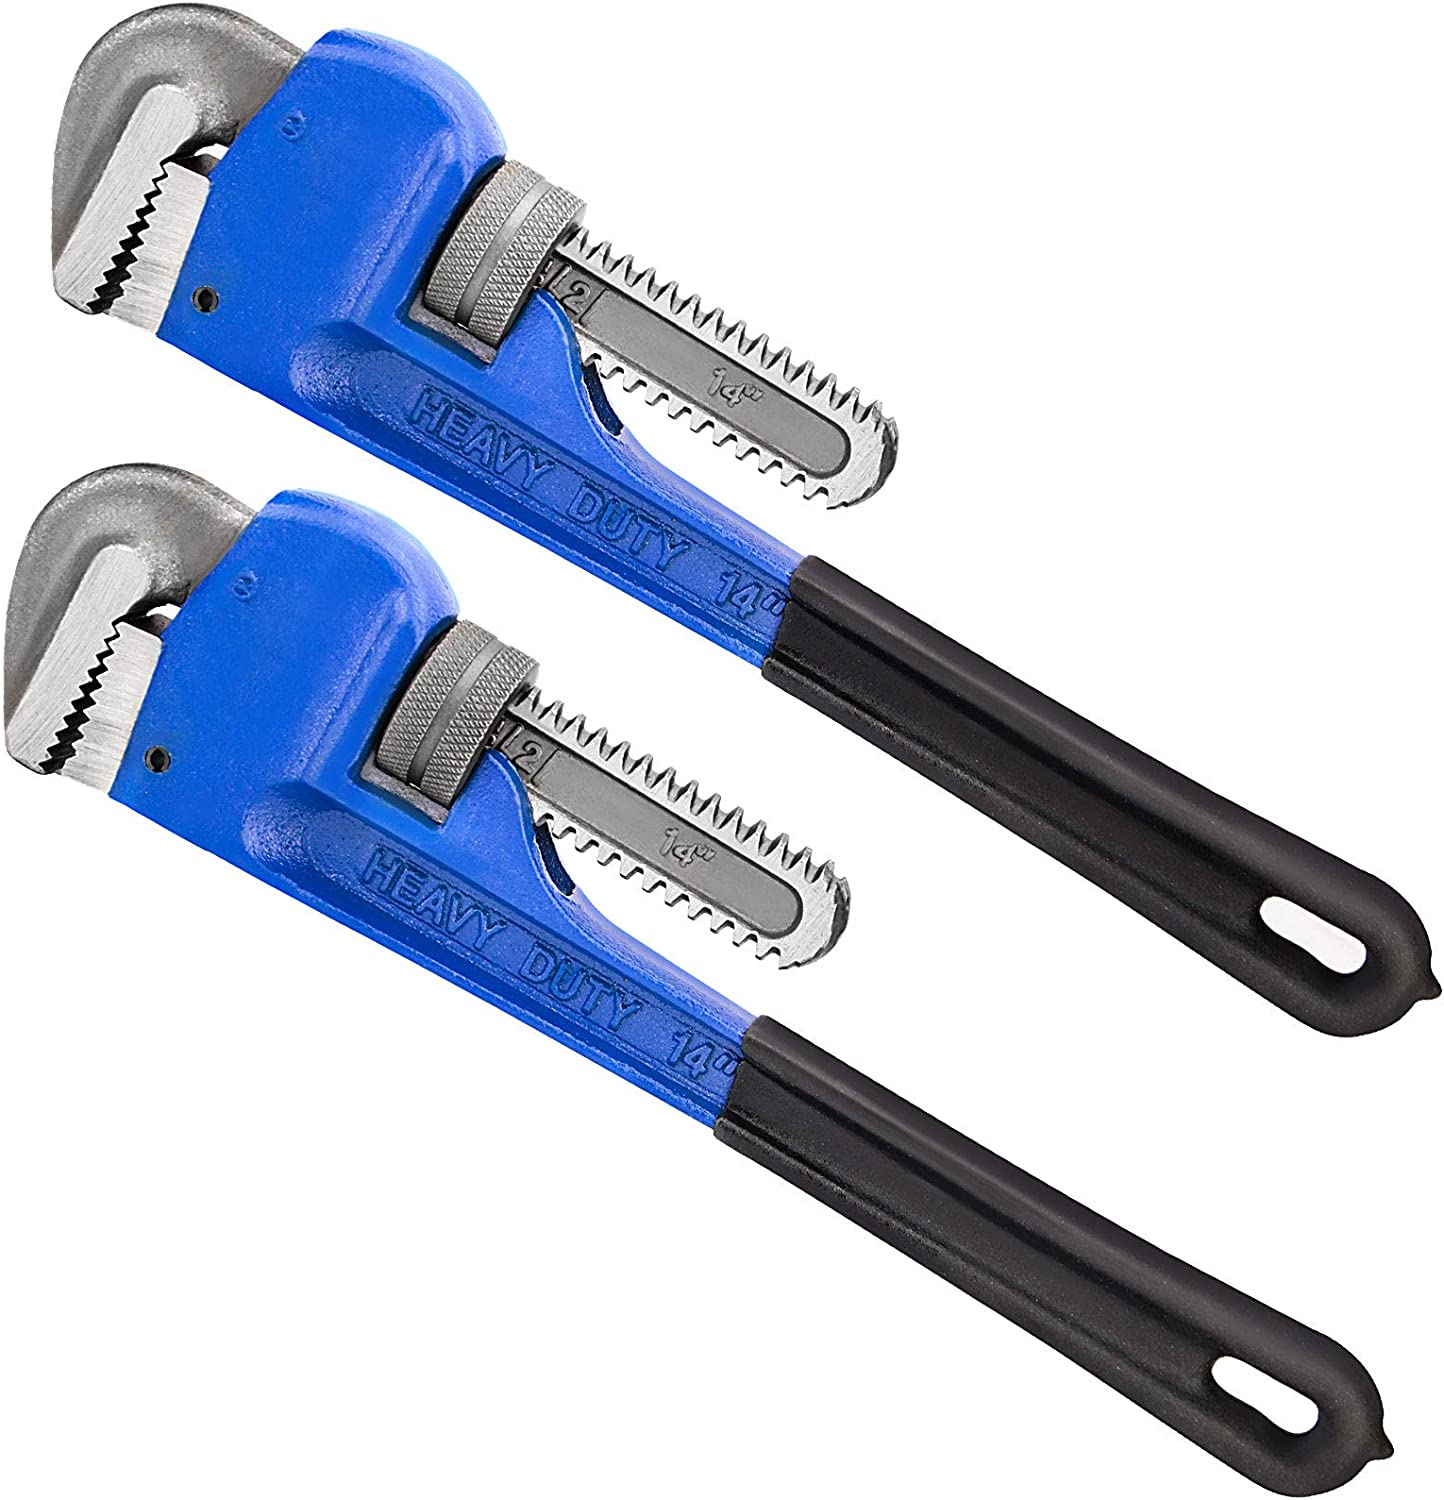 ZOENHOU 14 Inch 2 PCS Heavy Duty Pipe Wrenches Set Adjustable Straight Pipe Wrench for Plumbers Heat Treated Spanner Soft Grip Plumbing Wrench